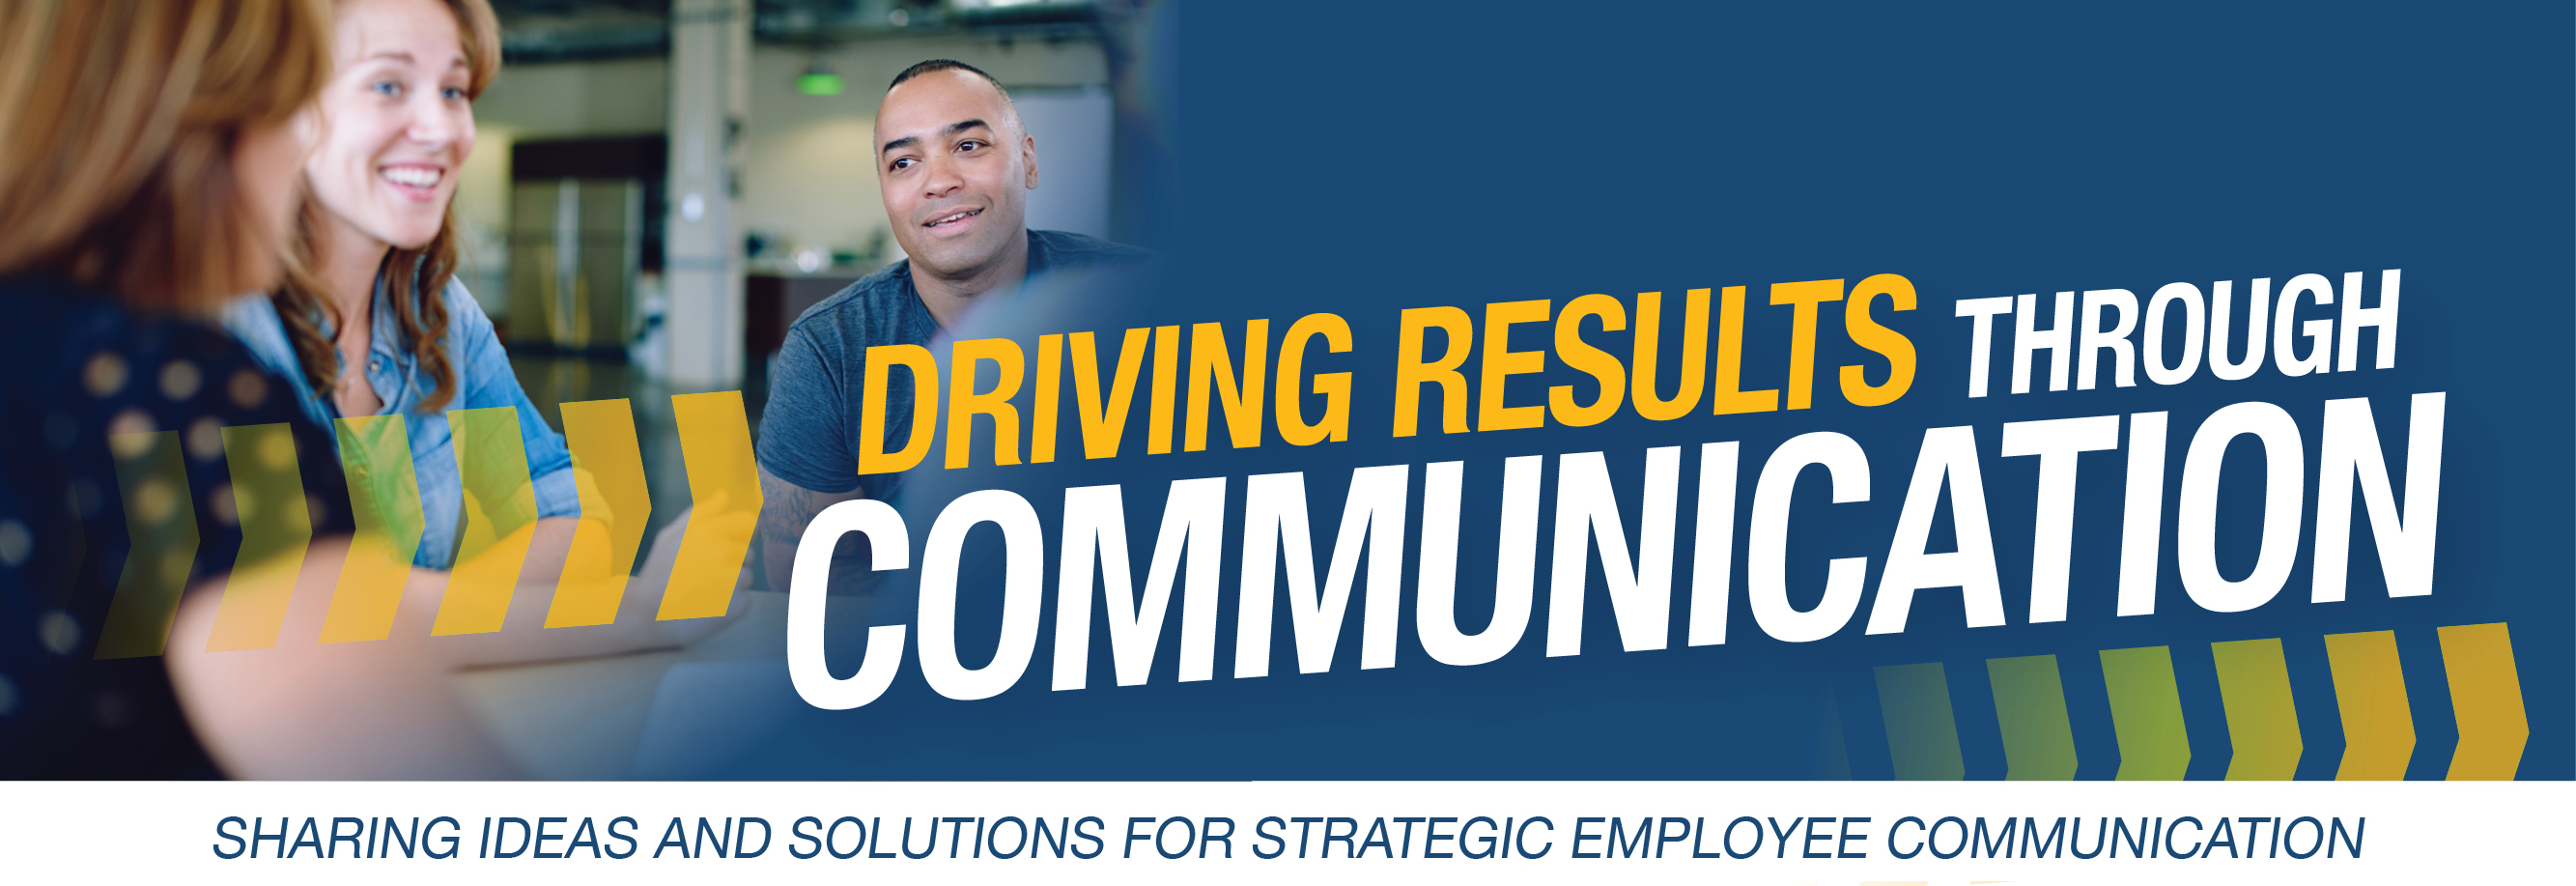 Tip #4 – Driving Results Through Communication